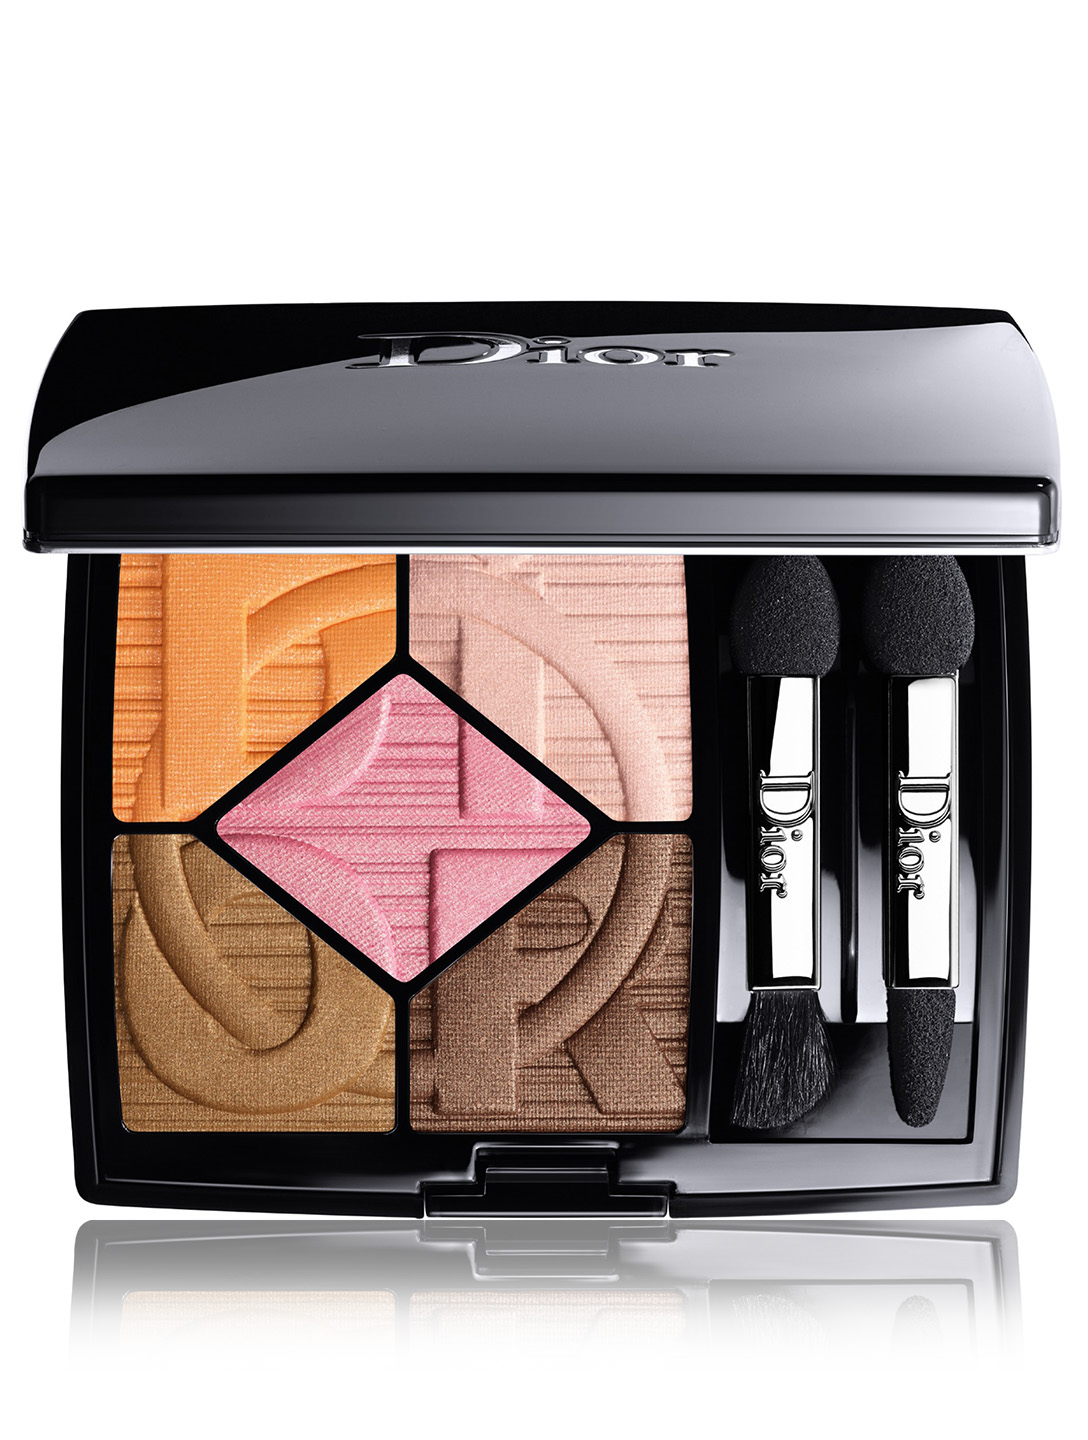 DIOR 5 Couleurs Eyeshadow Palette - Colour Games Limited Edition Beauty Brown